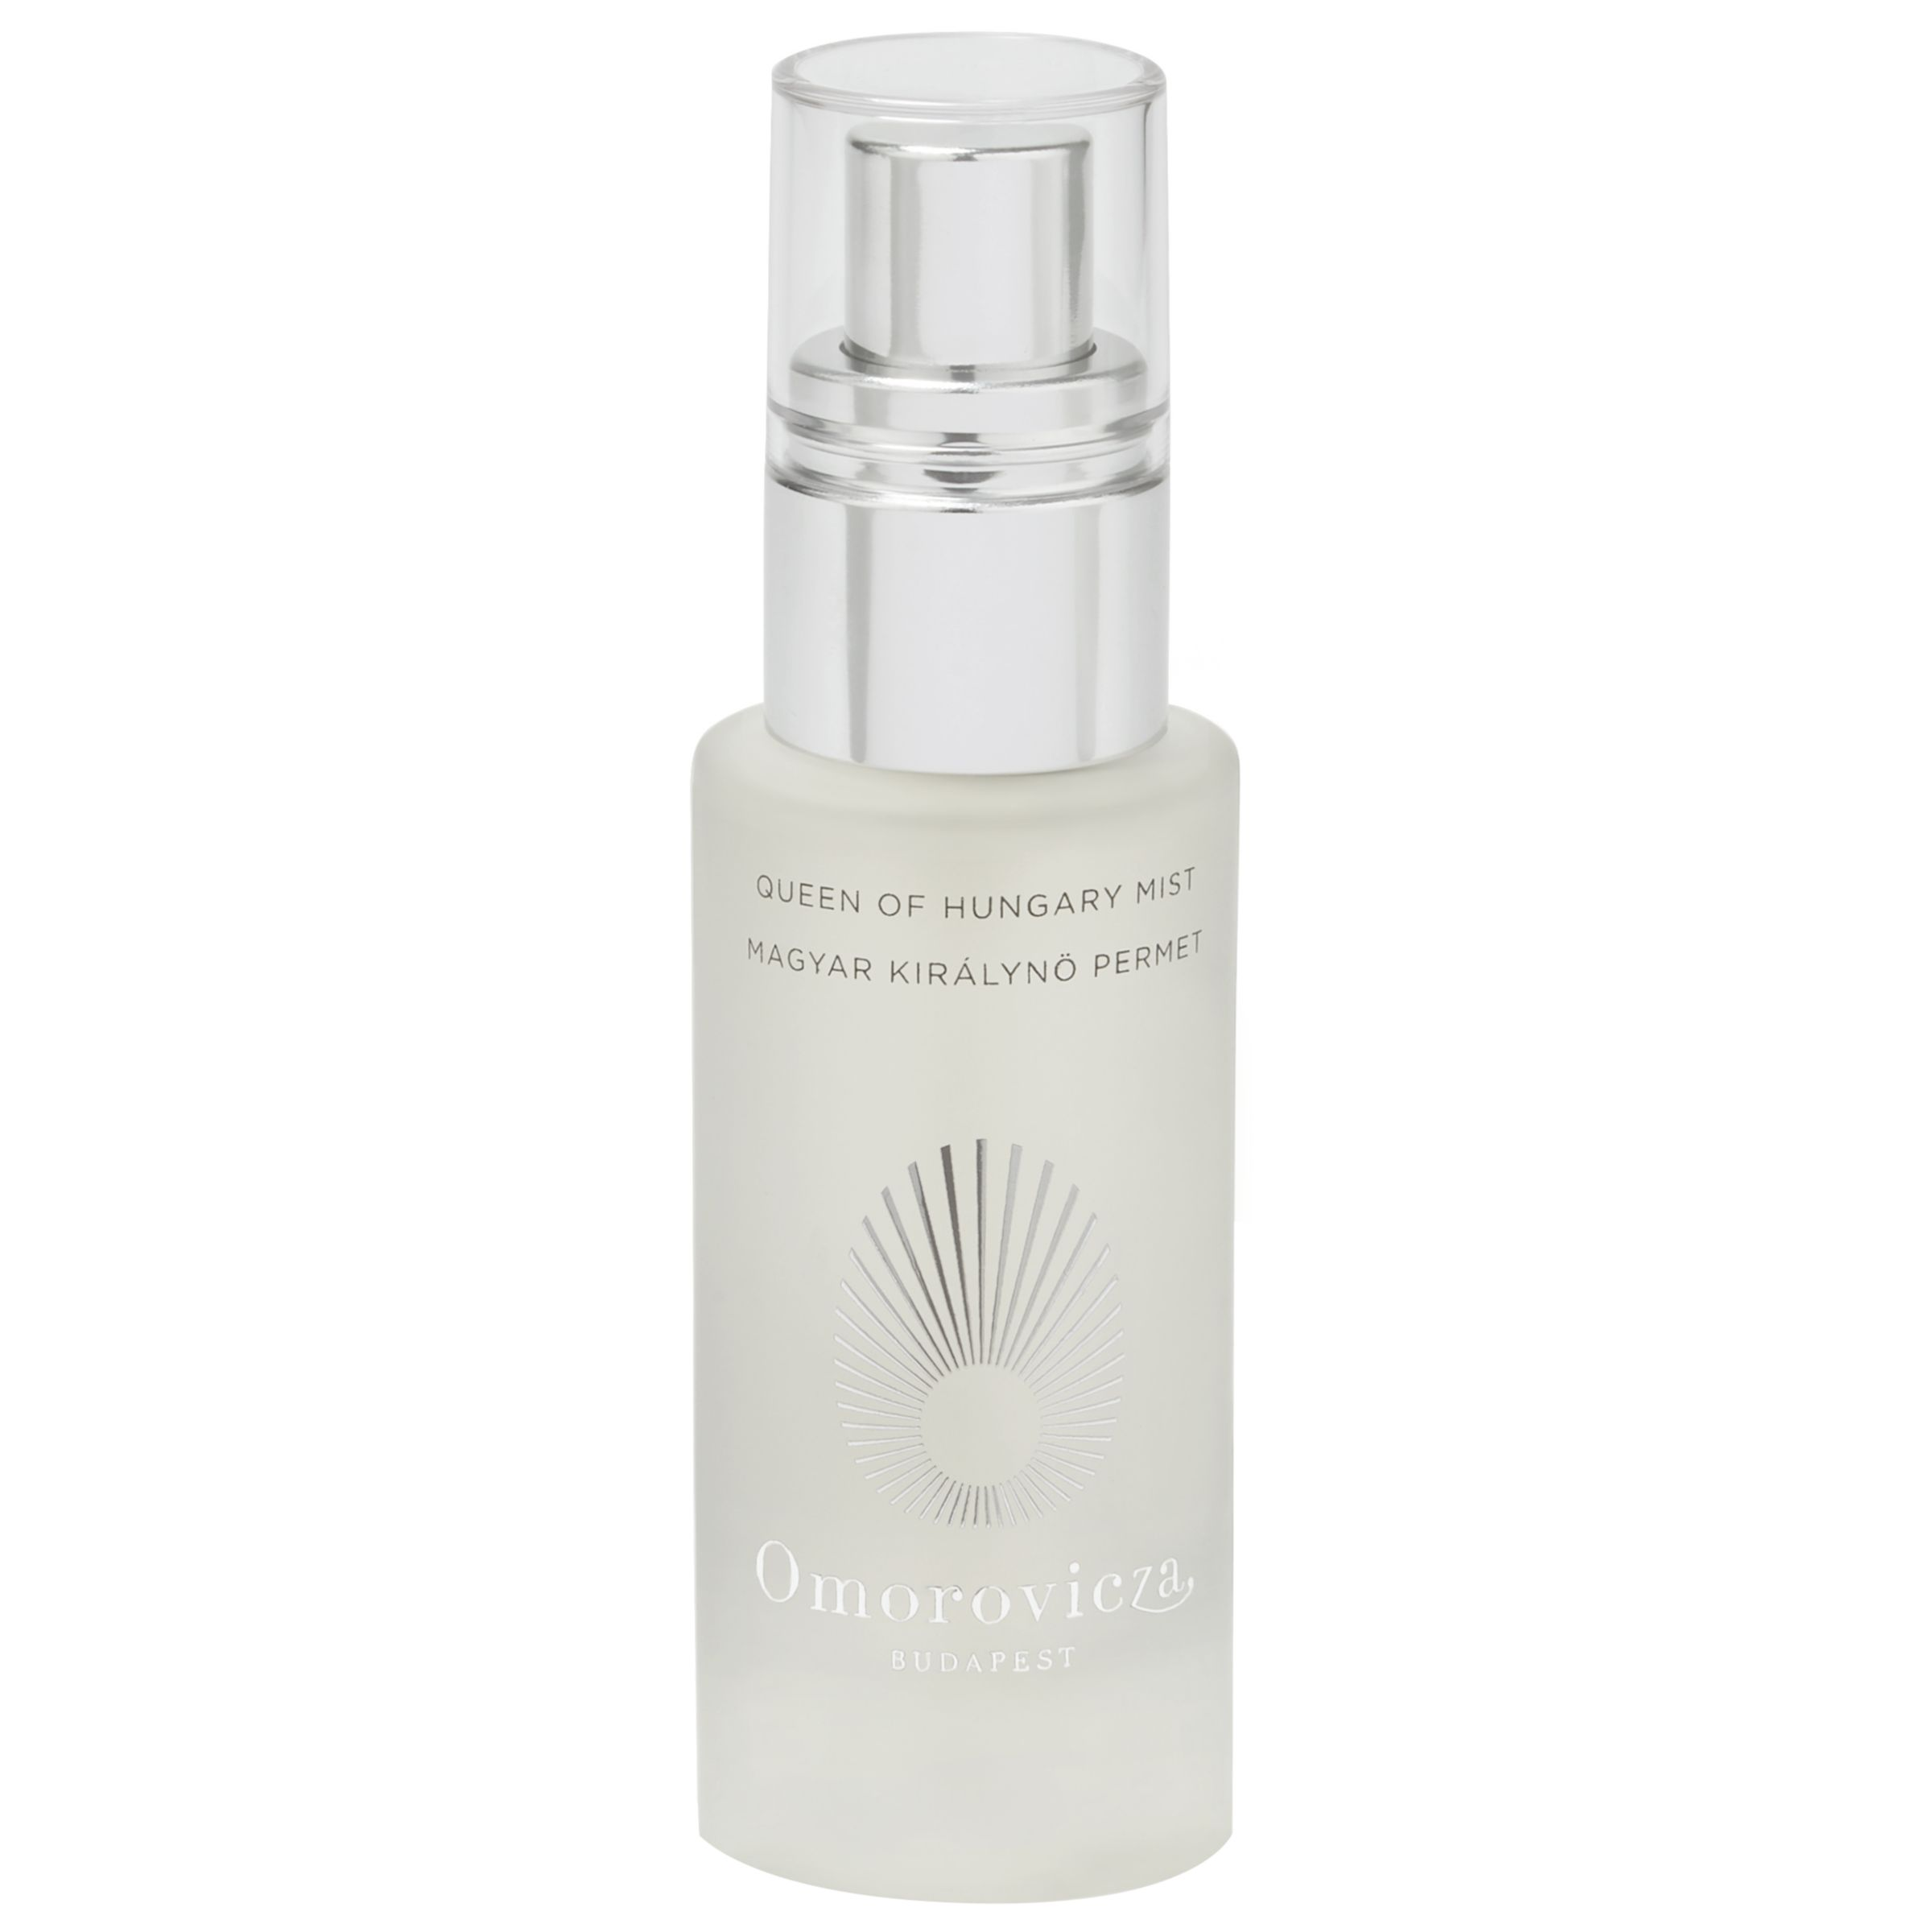 Omorovicza Omorovicza Queen of Hungary Mist Travel Size, 30ml